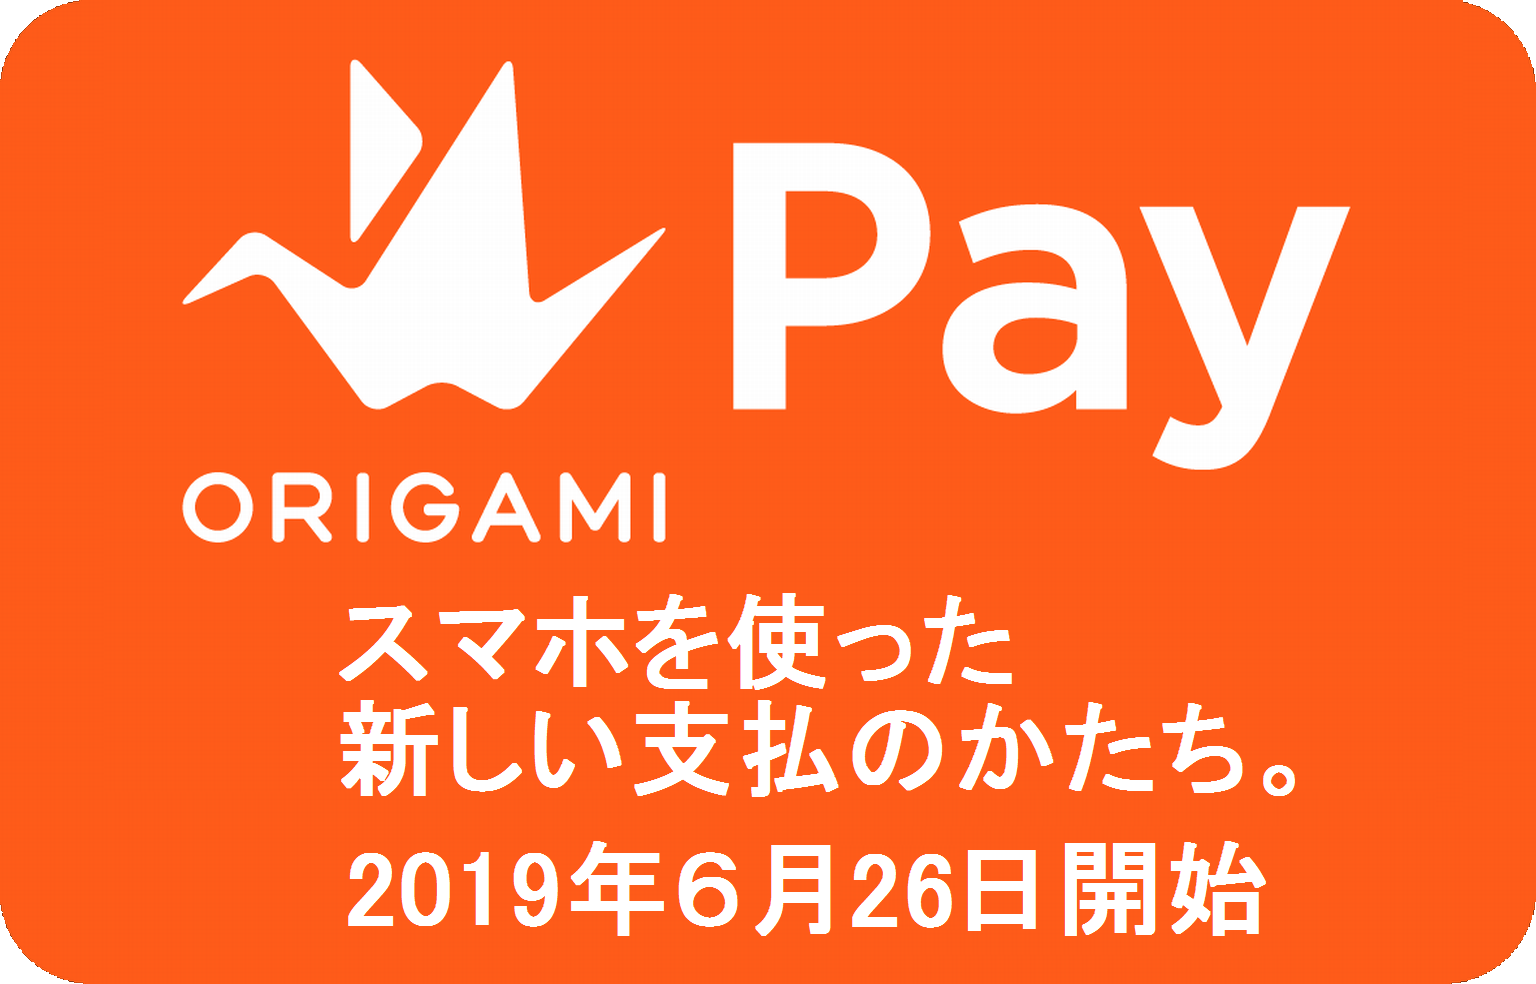 Origami-Pay